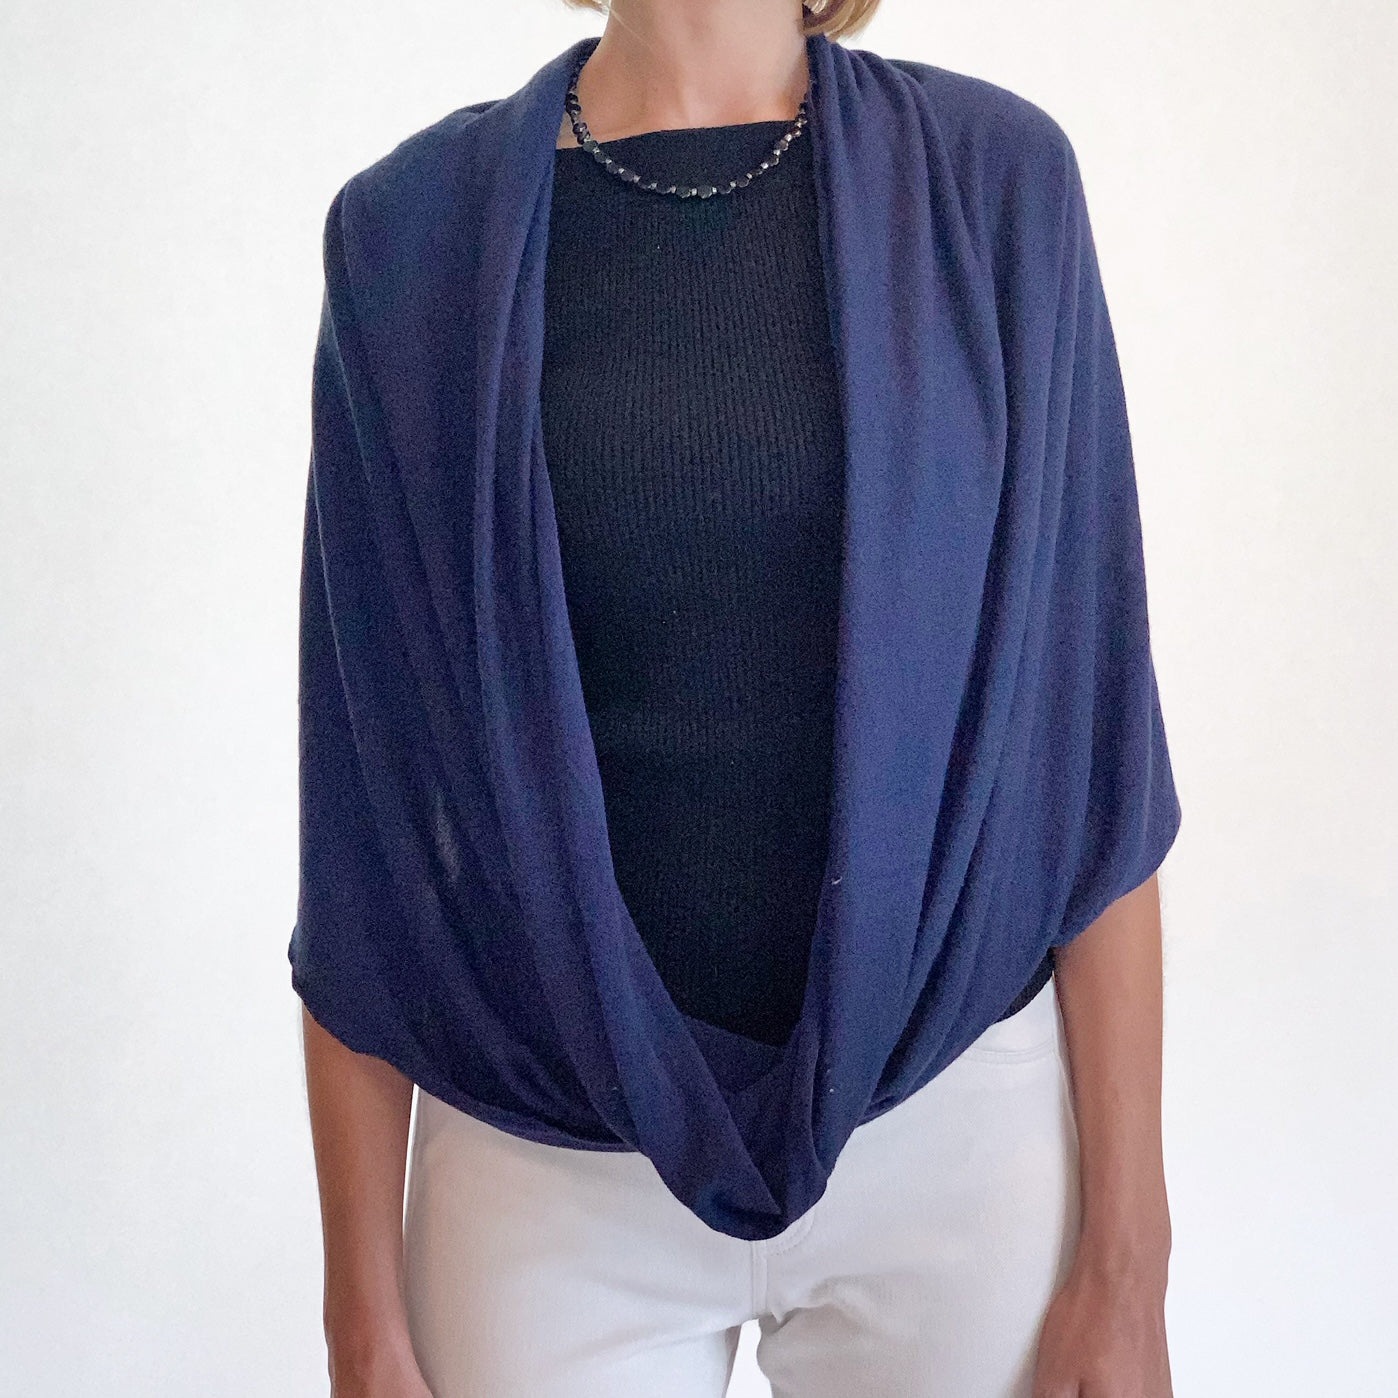 New! Sweater Infinity Scarf and Shoulder Wrap Shawl